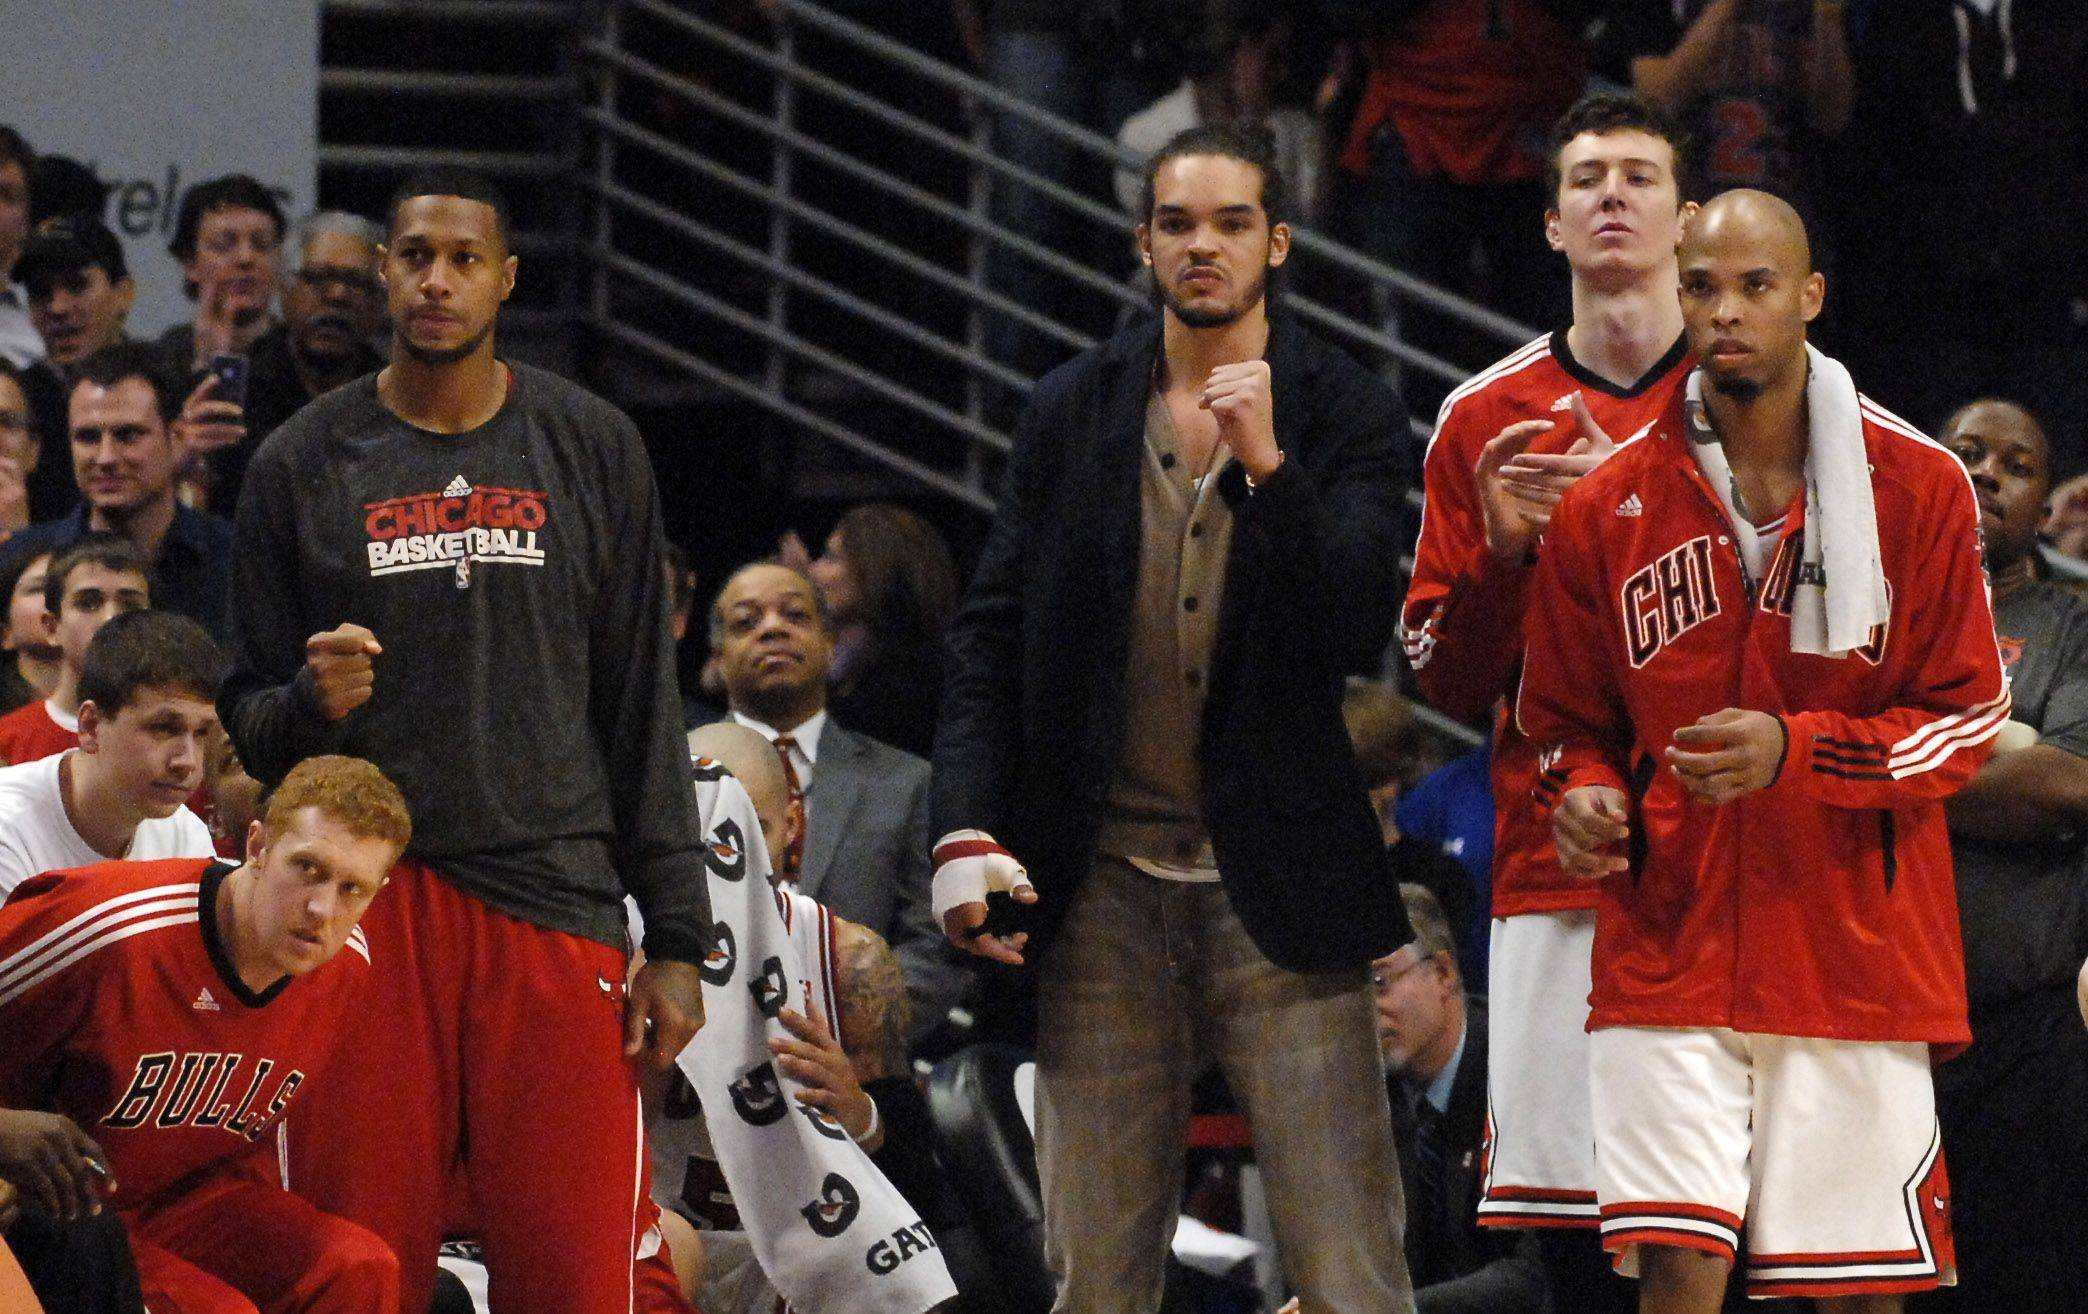 The Bulls bench, including Joakim Noah (in street clothes) watch Ronnie Brewer make a free throw in the final seconds during Saturday's game at the United Center in Chicago.